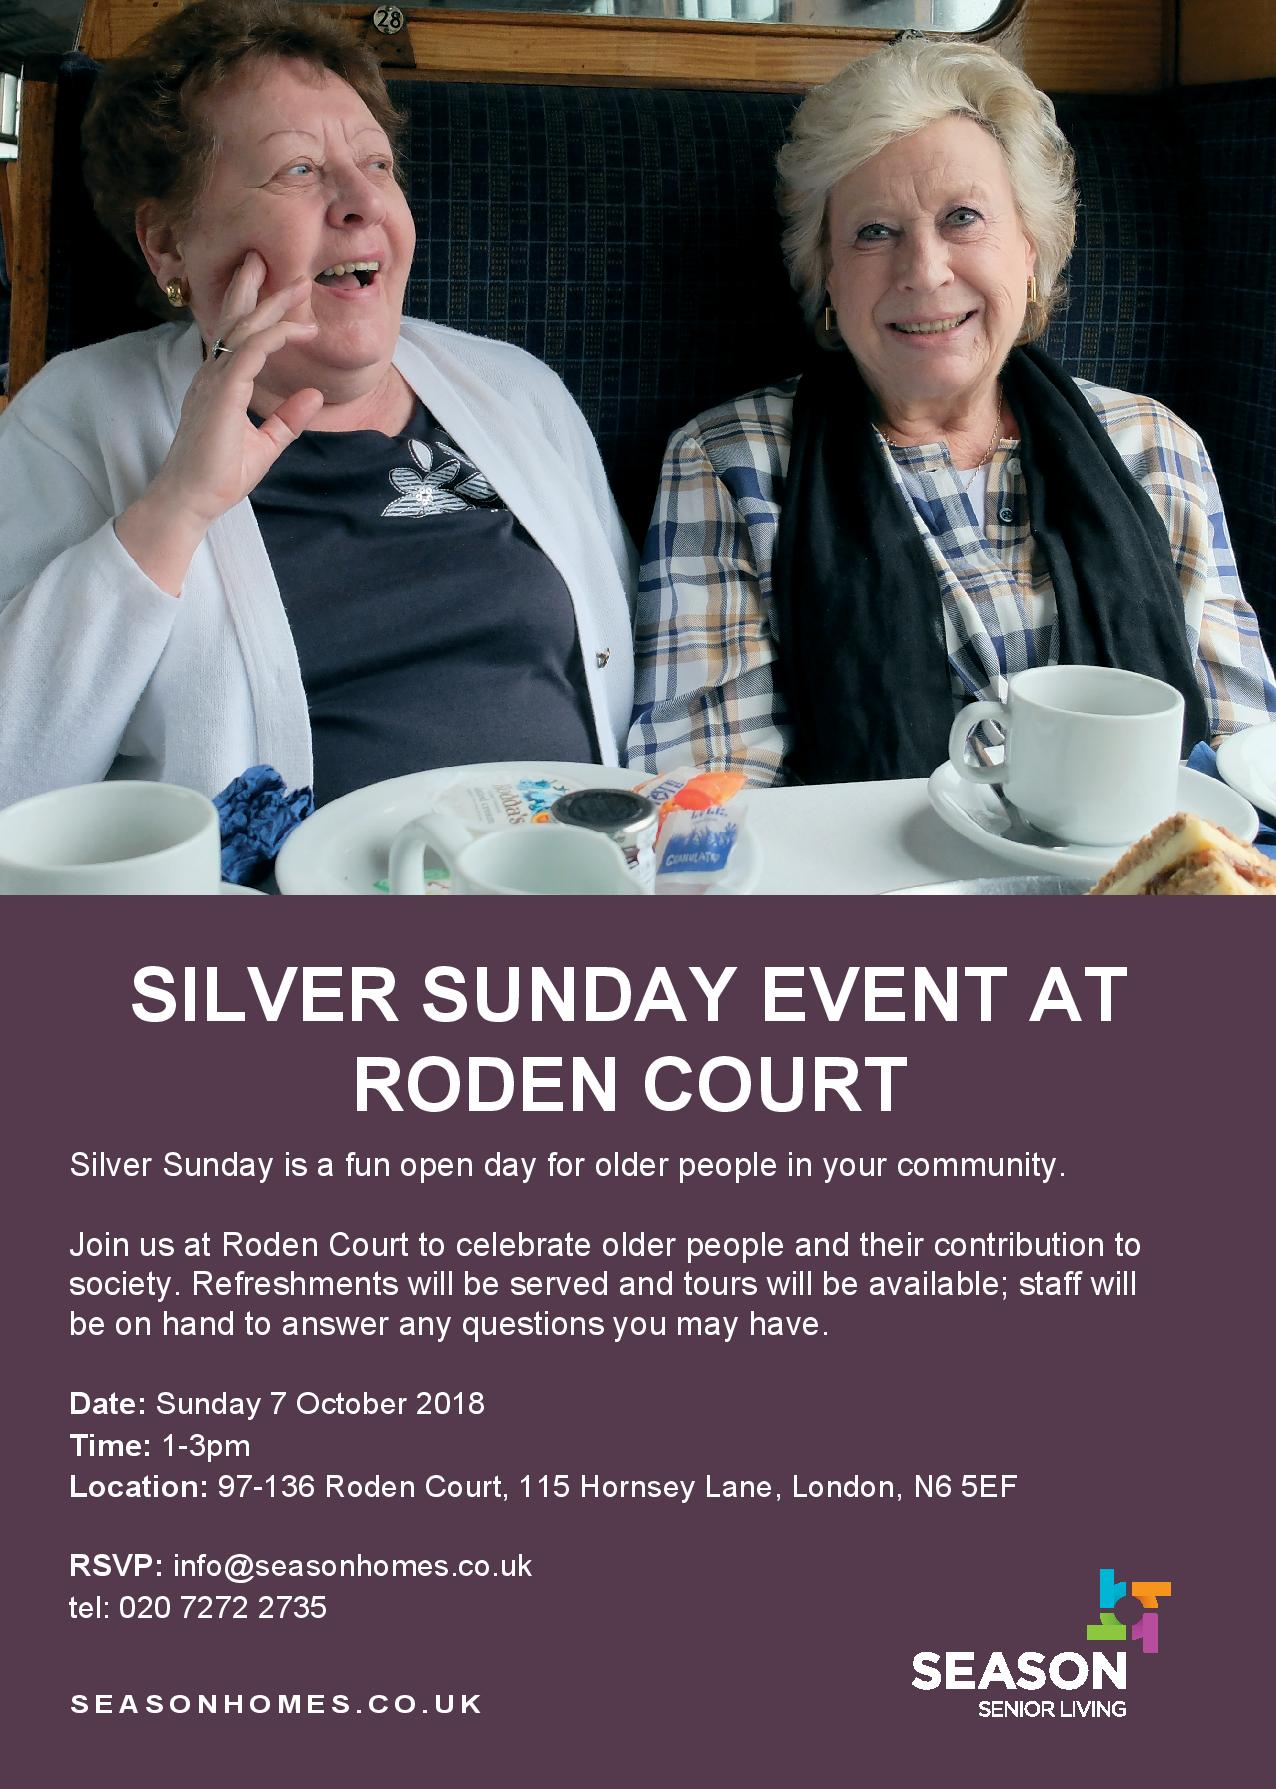 SILVER SUNDAY EVENT RODEN COURT